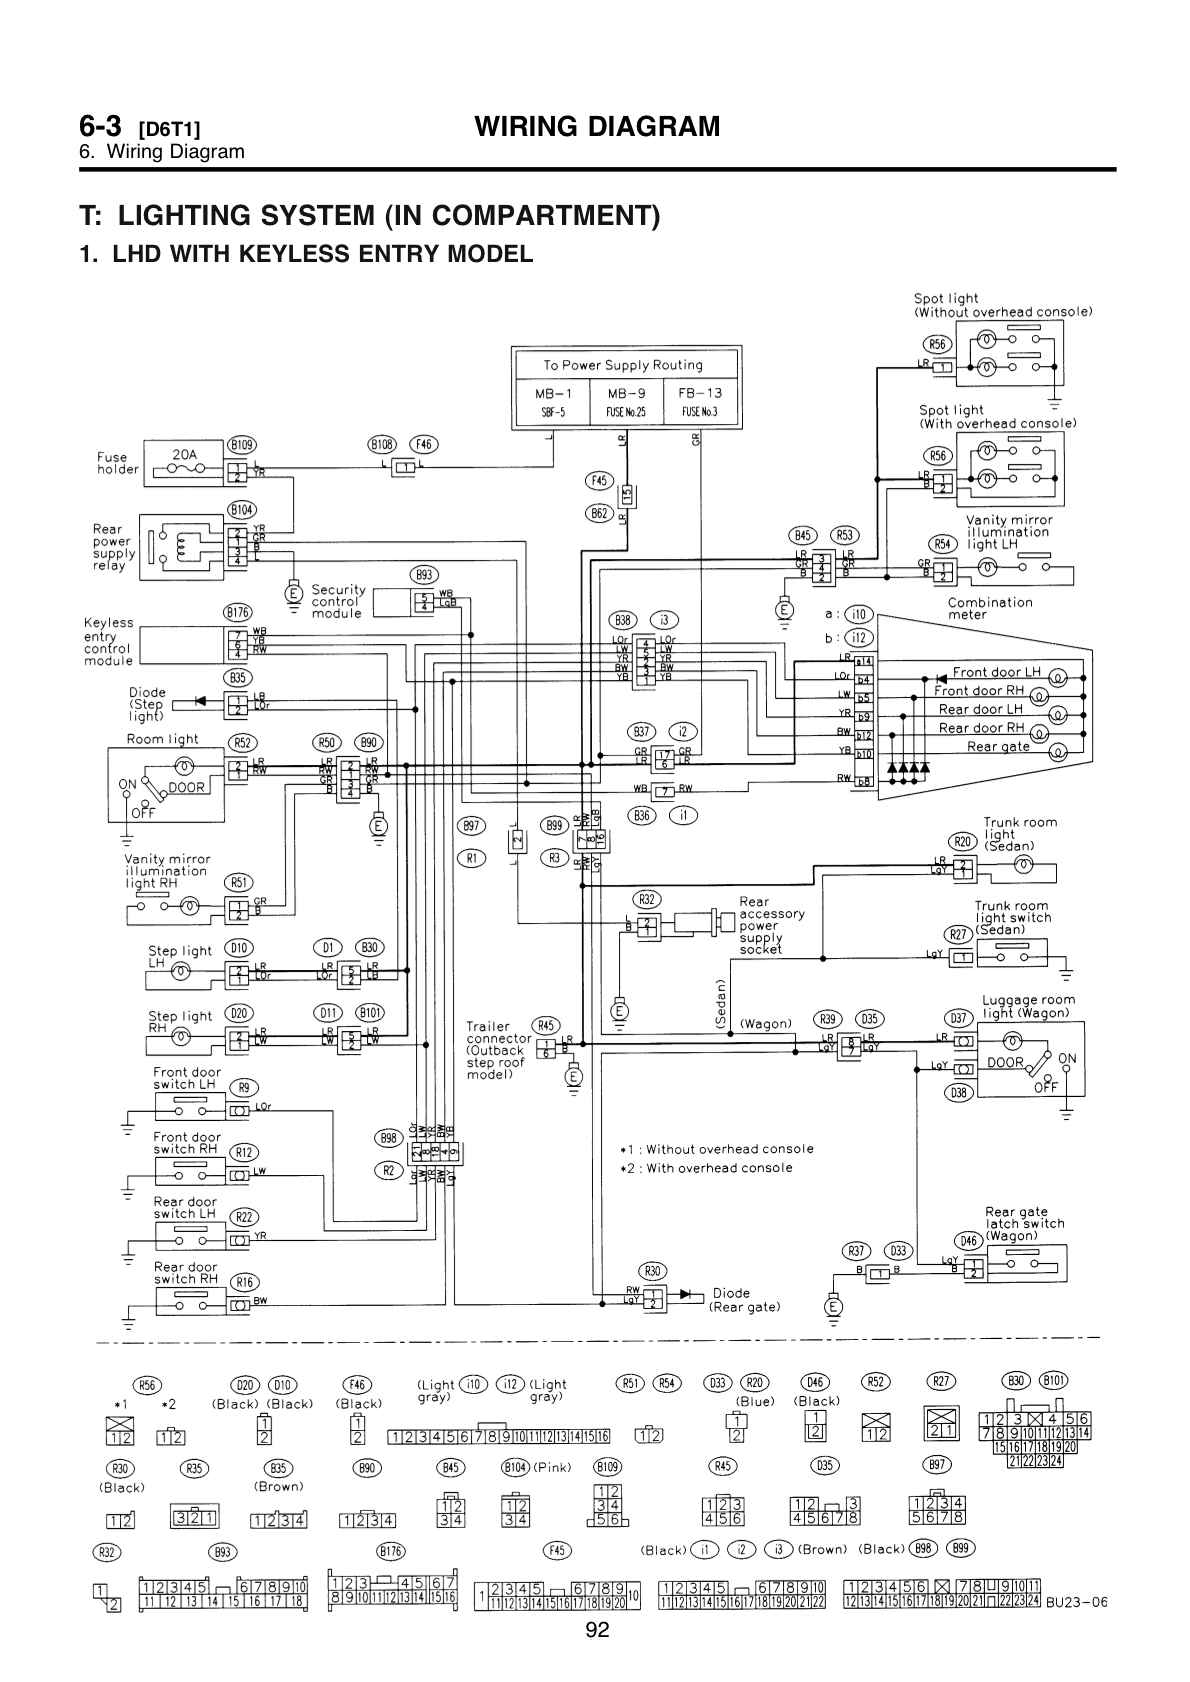 1997 subaru legacy stereo wiring diagram 1997 subaru radio wiring diagrams subaru wiring diagrams cars on 1997 subaru legacy stereo wiring diagram